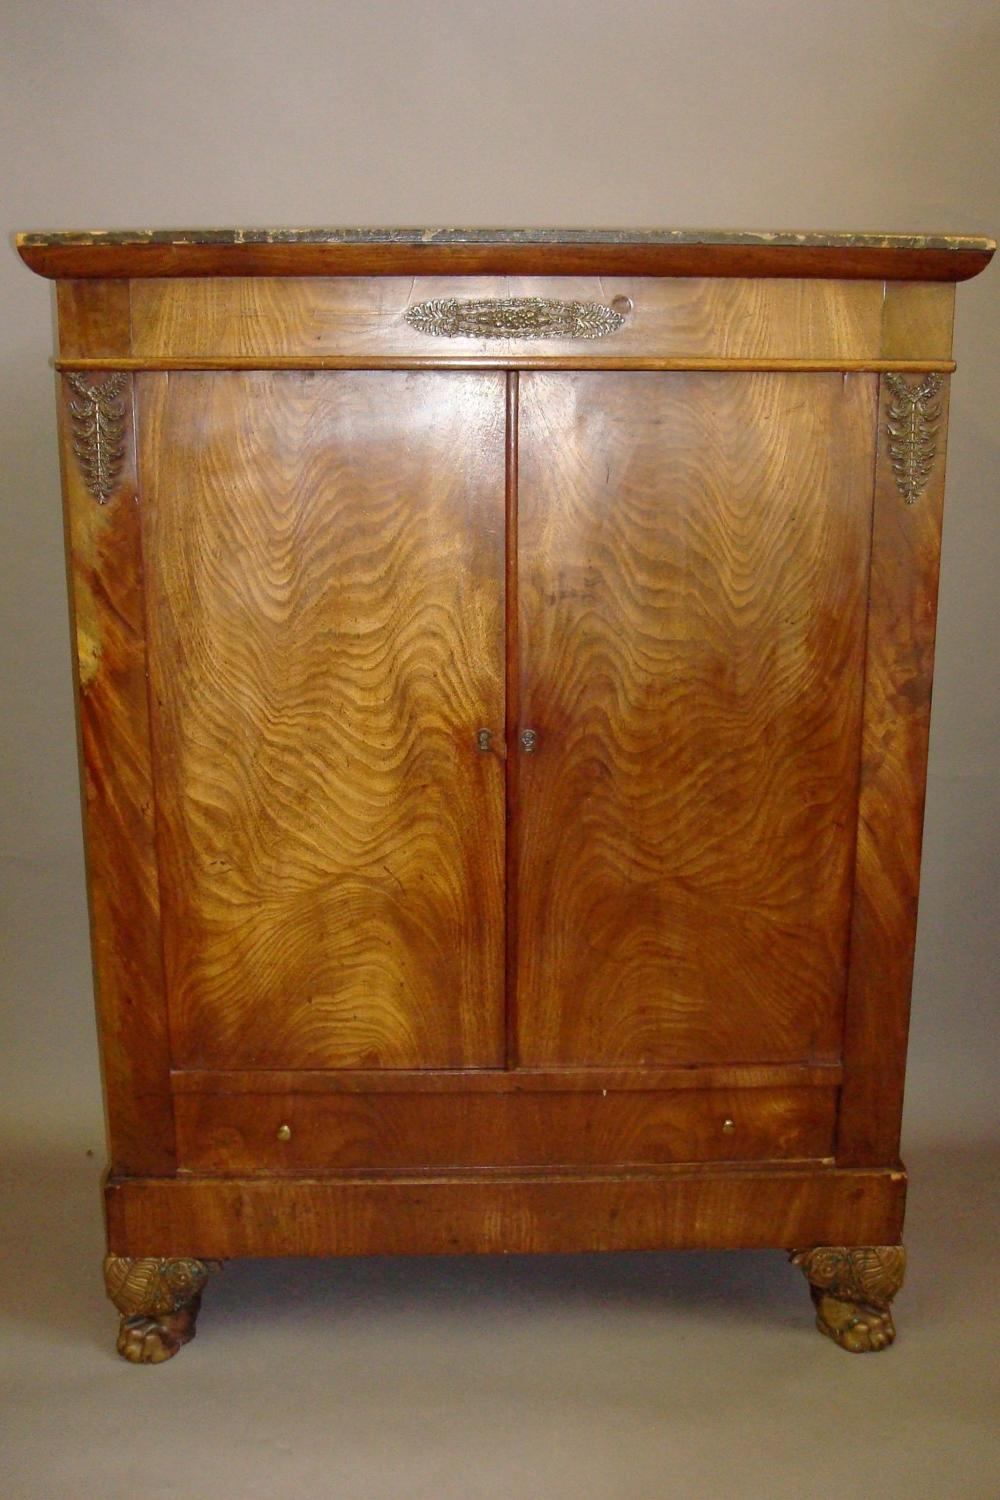 C19th mahogany side cabinet